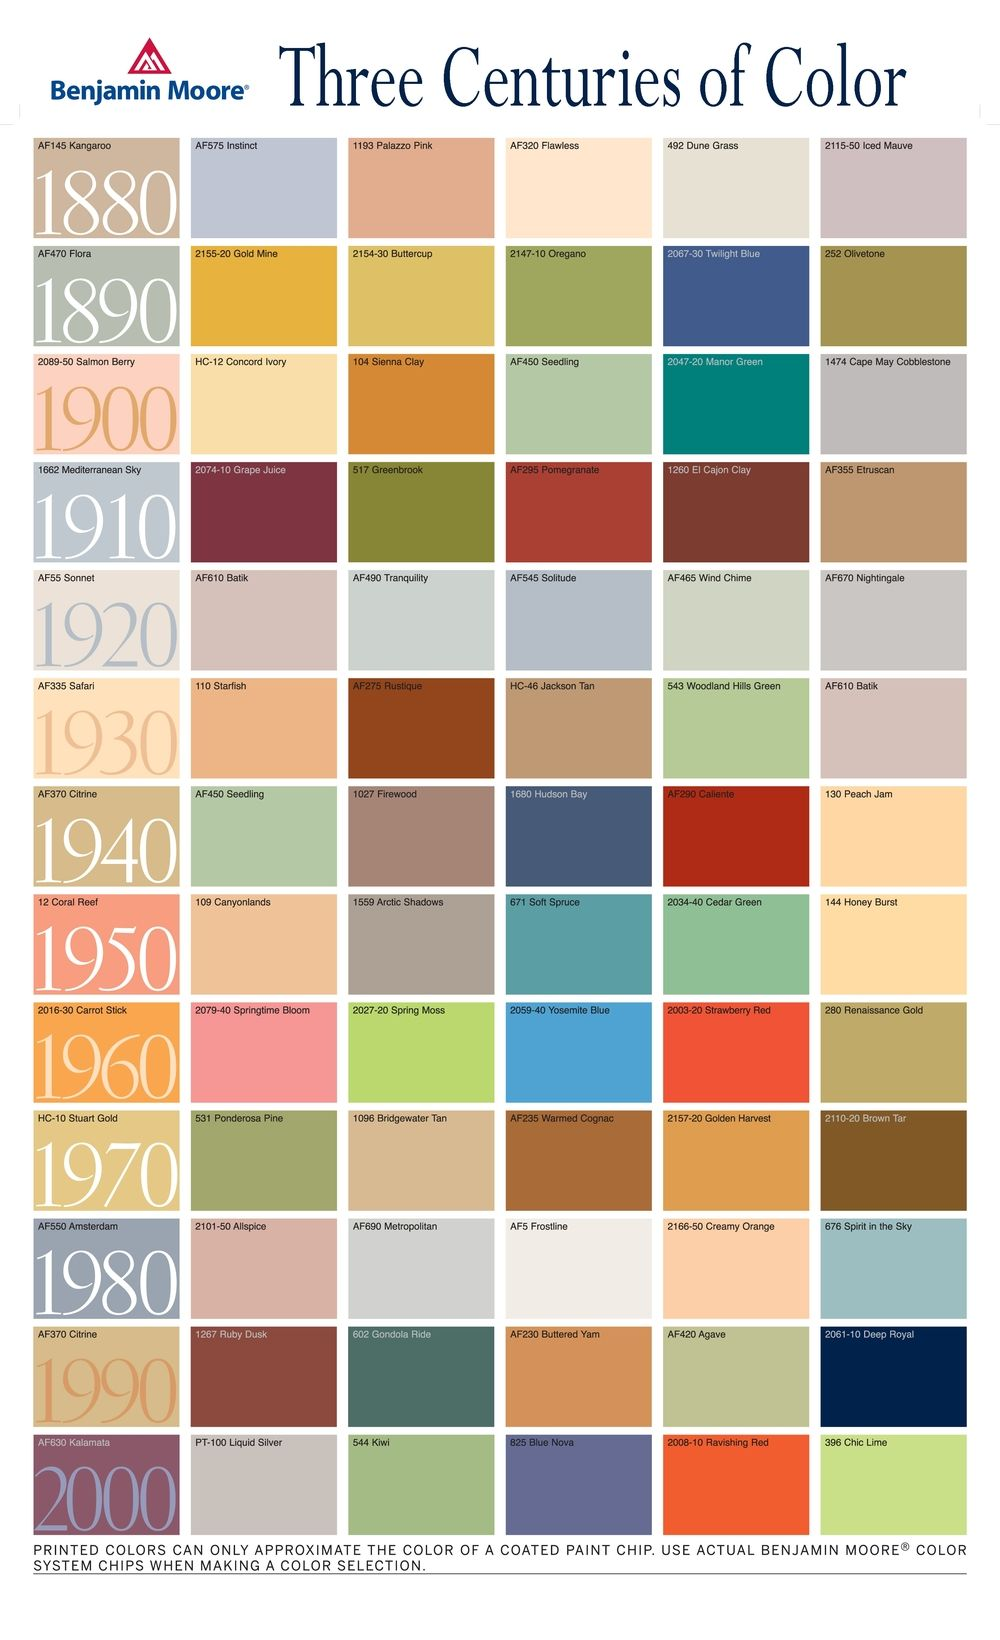 Three centuries of color in 30 seconds benjamin moore choices benjamin moore historical color chart three centuries of color nvjuhfo Choice Image